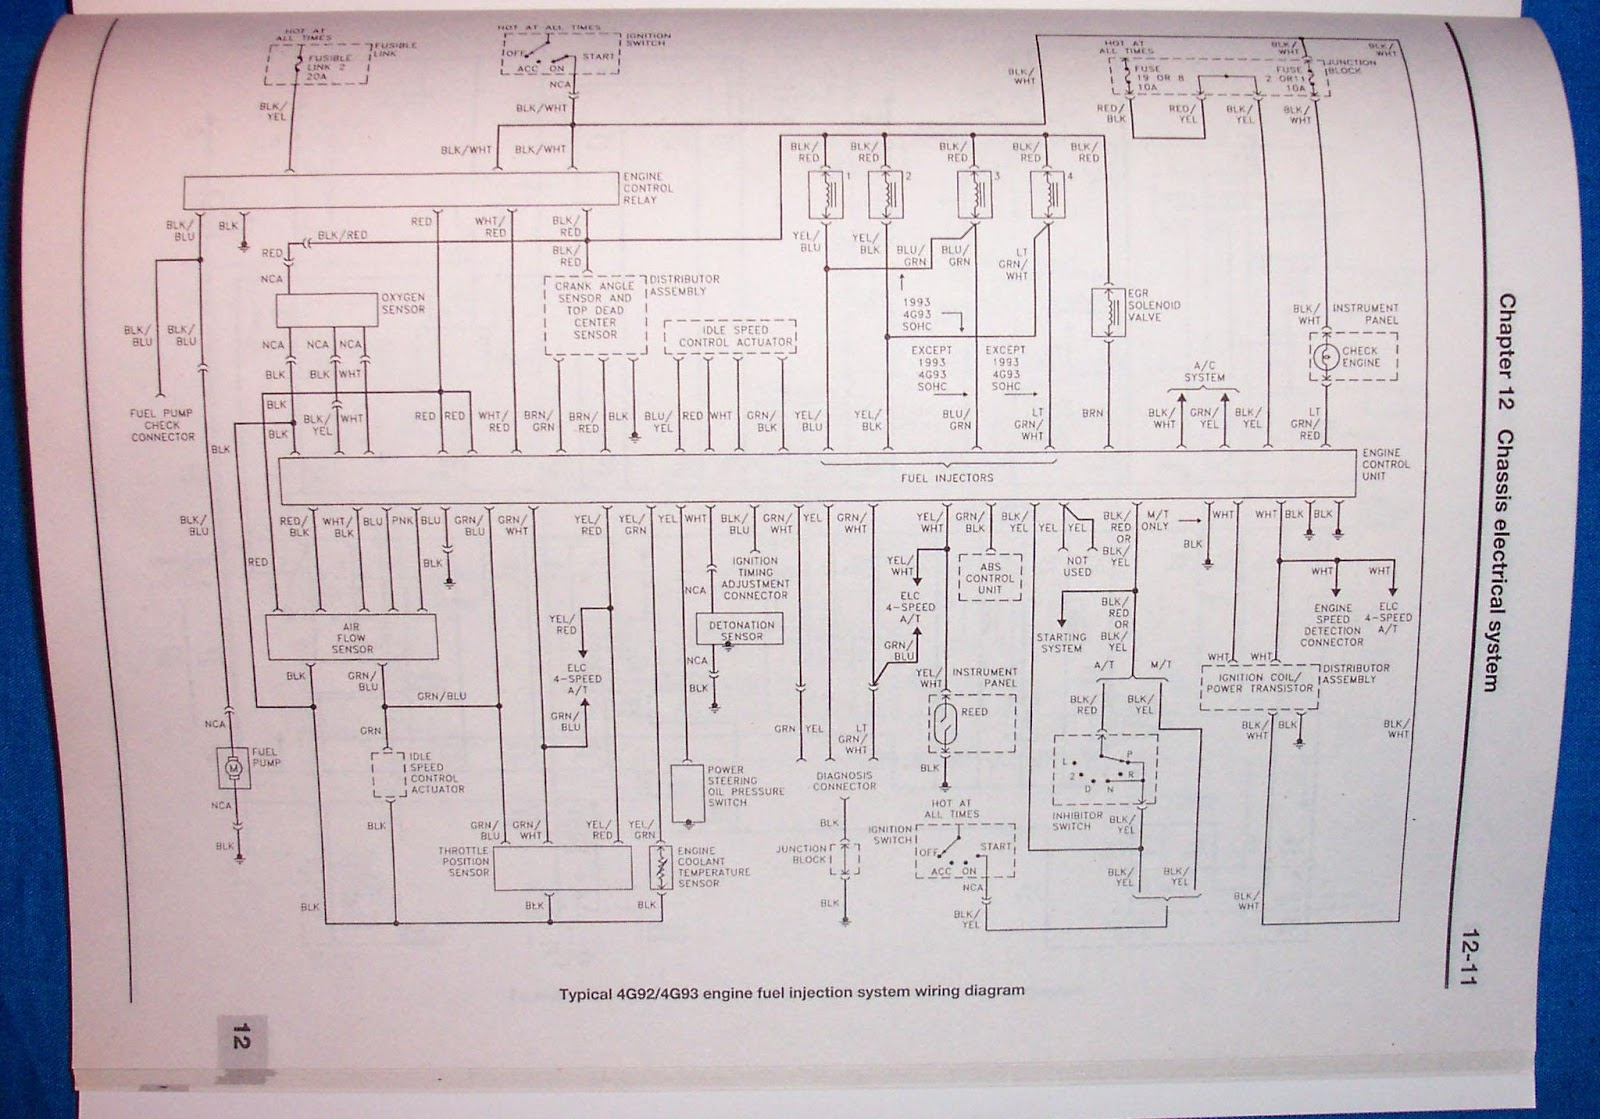 4g91 carburetor wiring diagram how to read diagrams aviation mitsubishi library